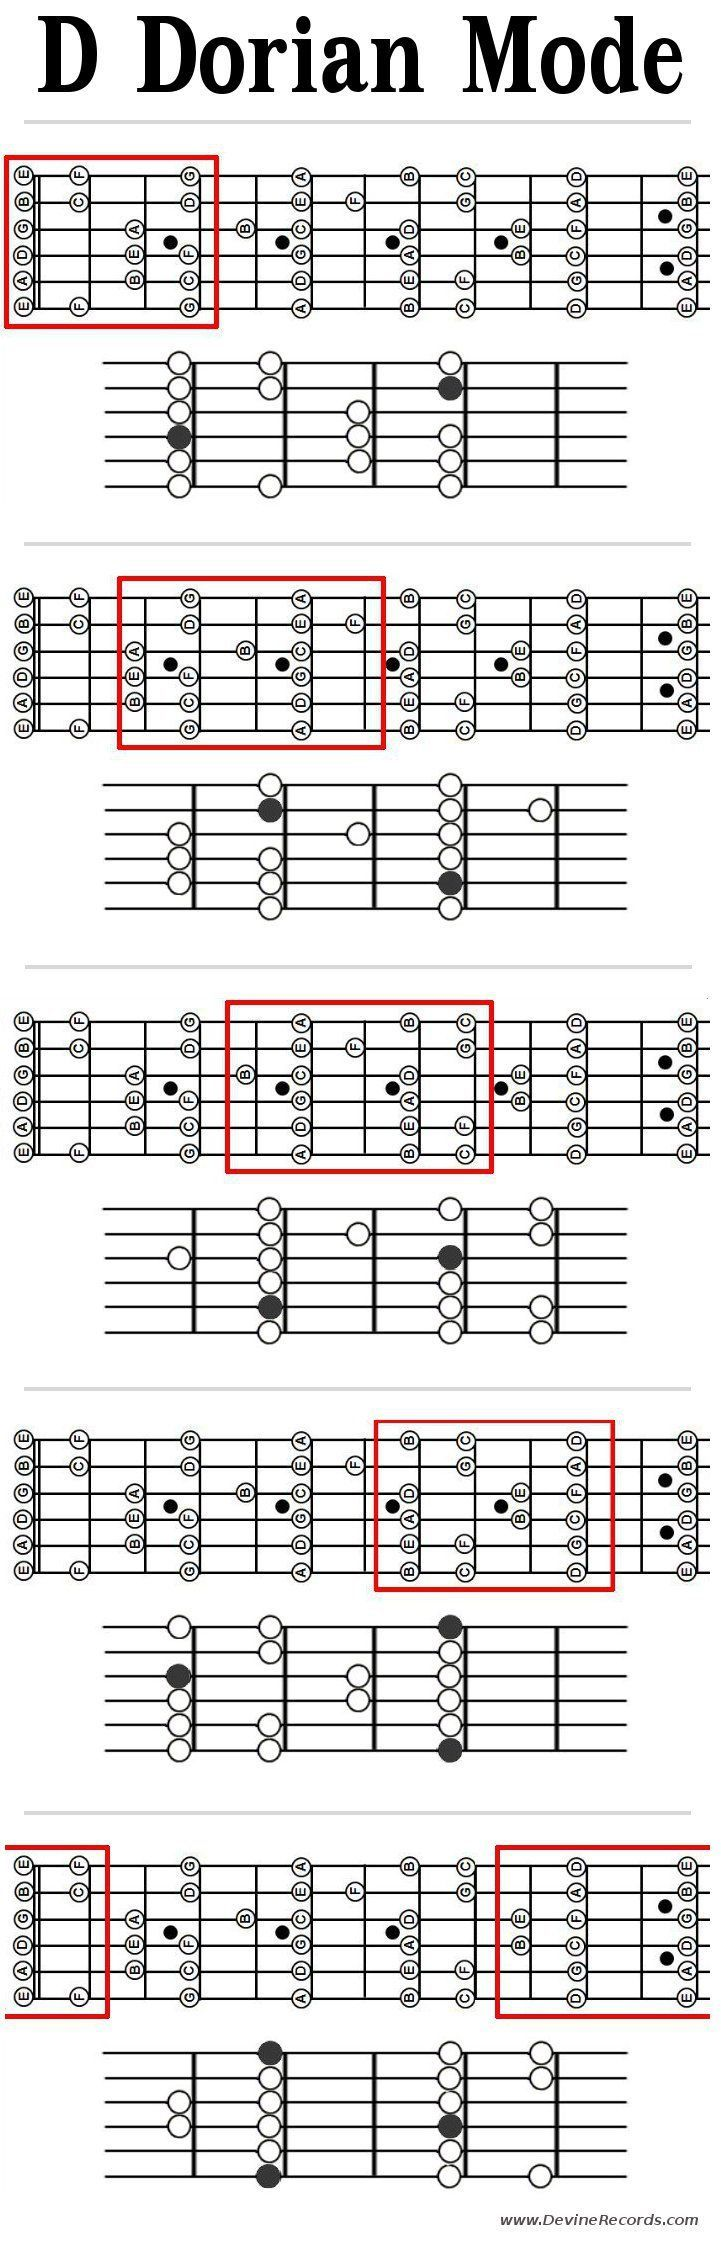 Guitar Dorian Mode Patterns In D Patterns With Root Notes And Note